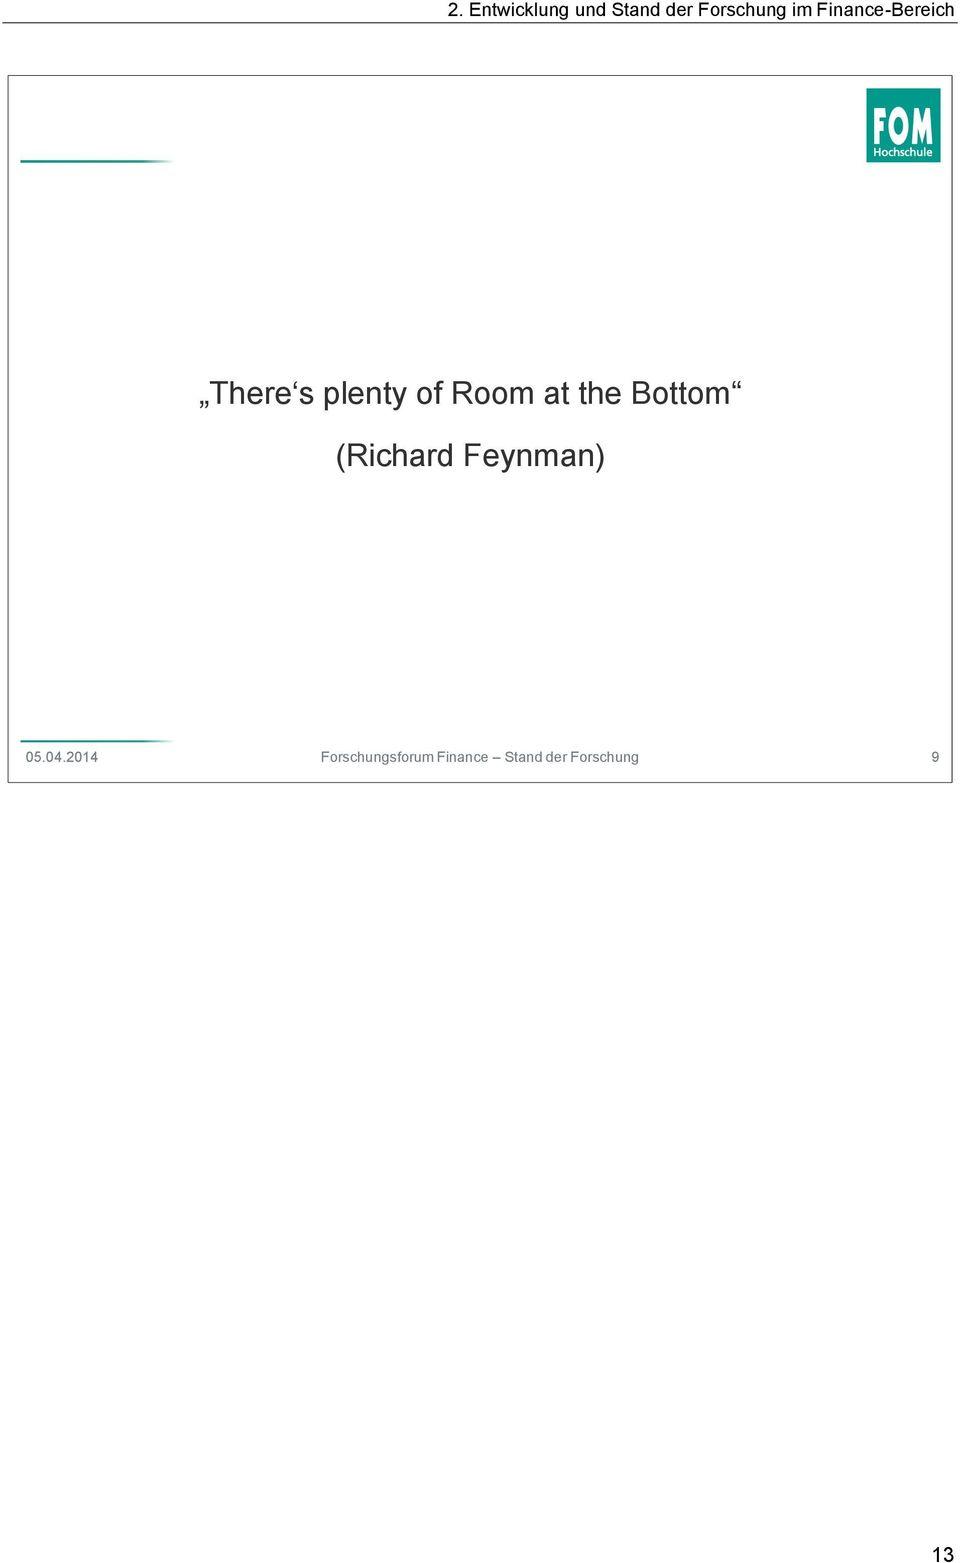 Room at the Bottom (Richard Feynman)